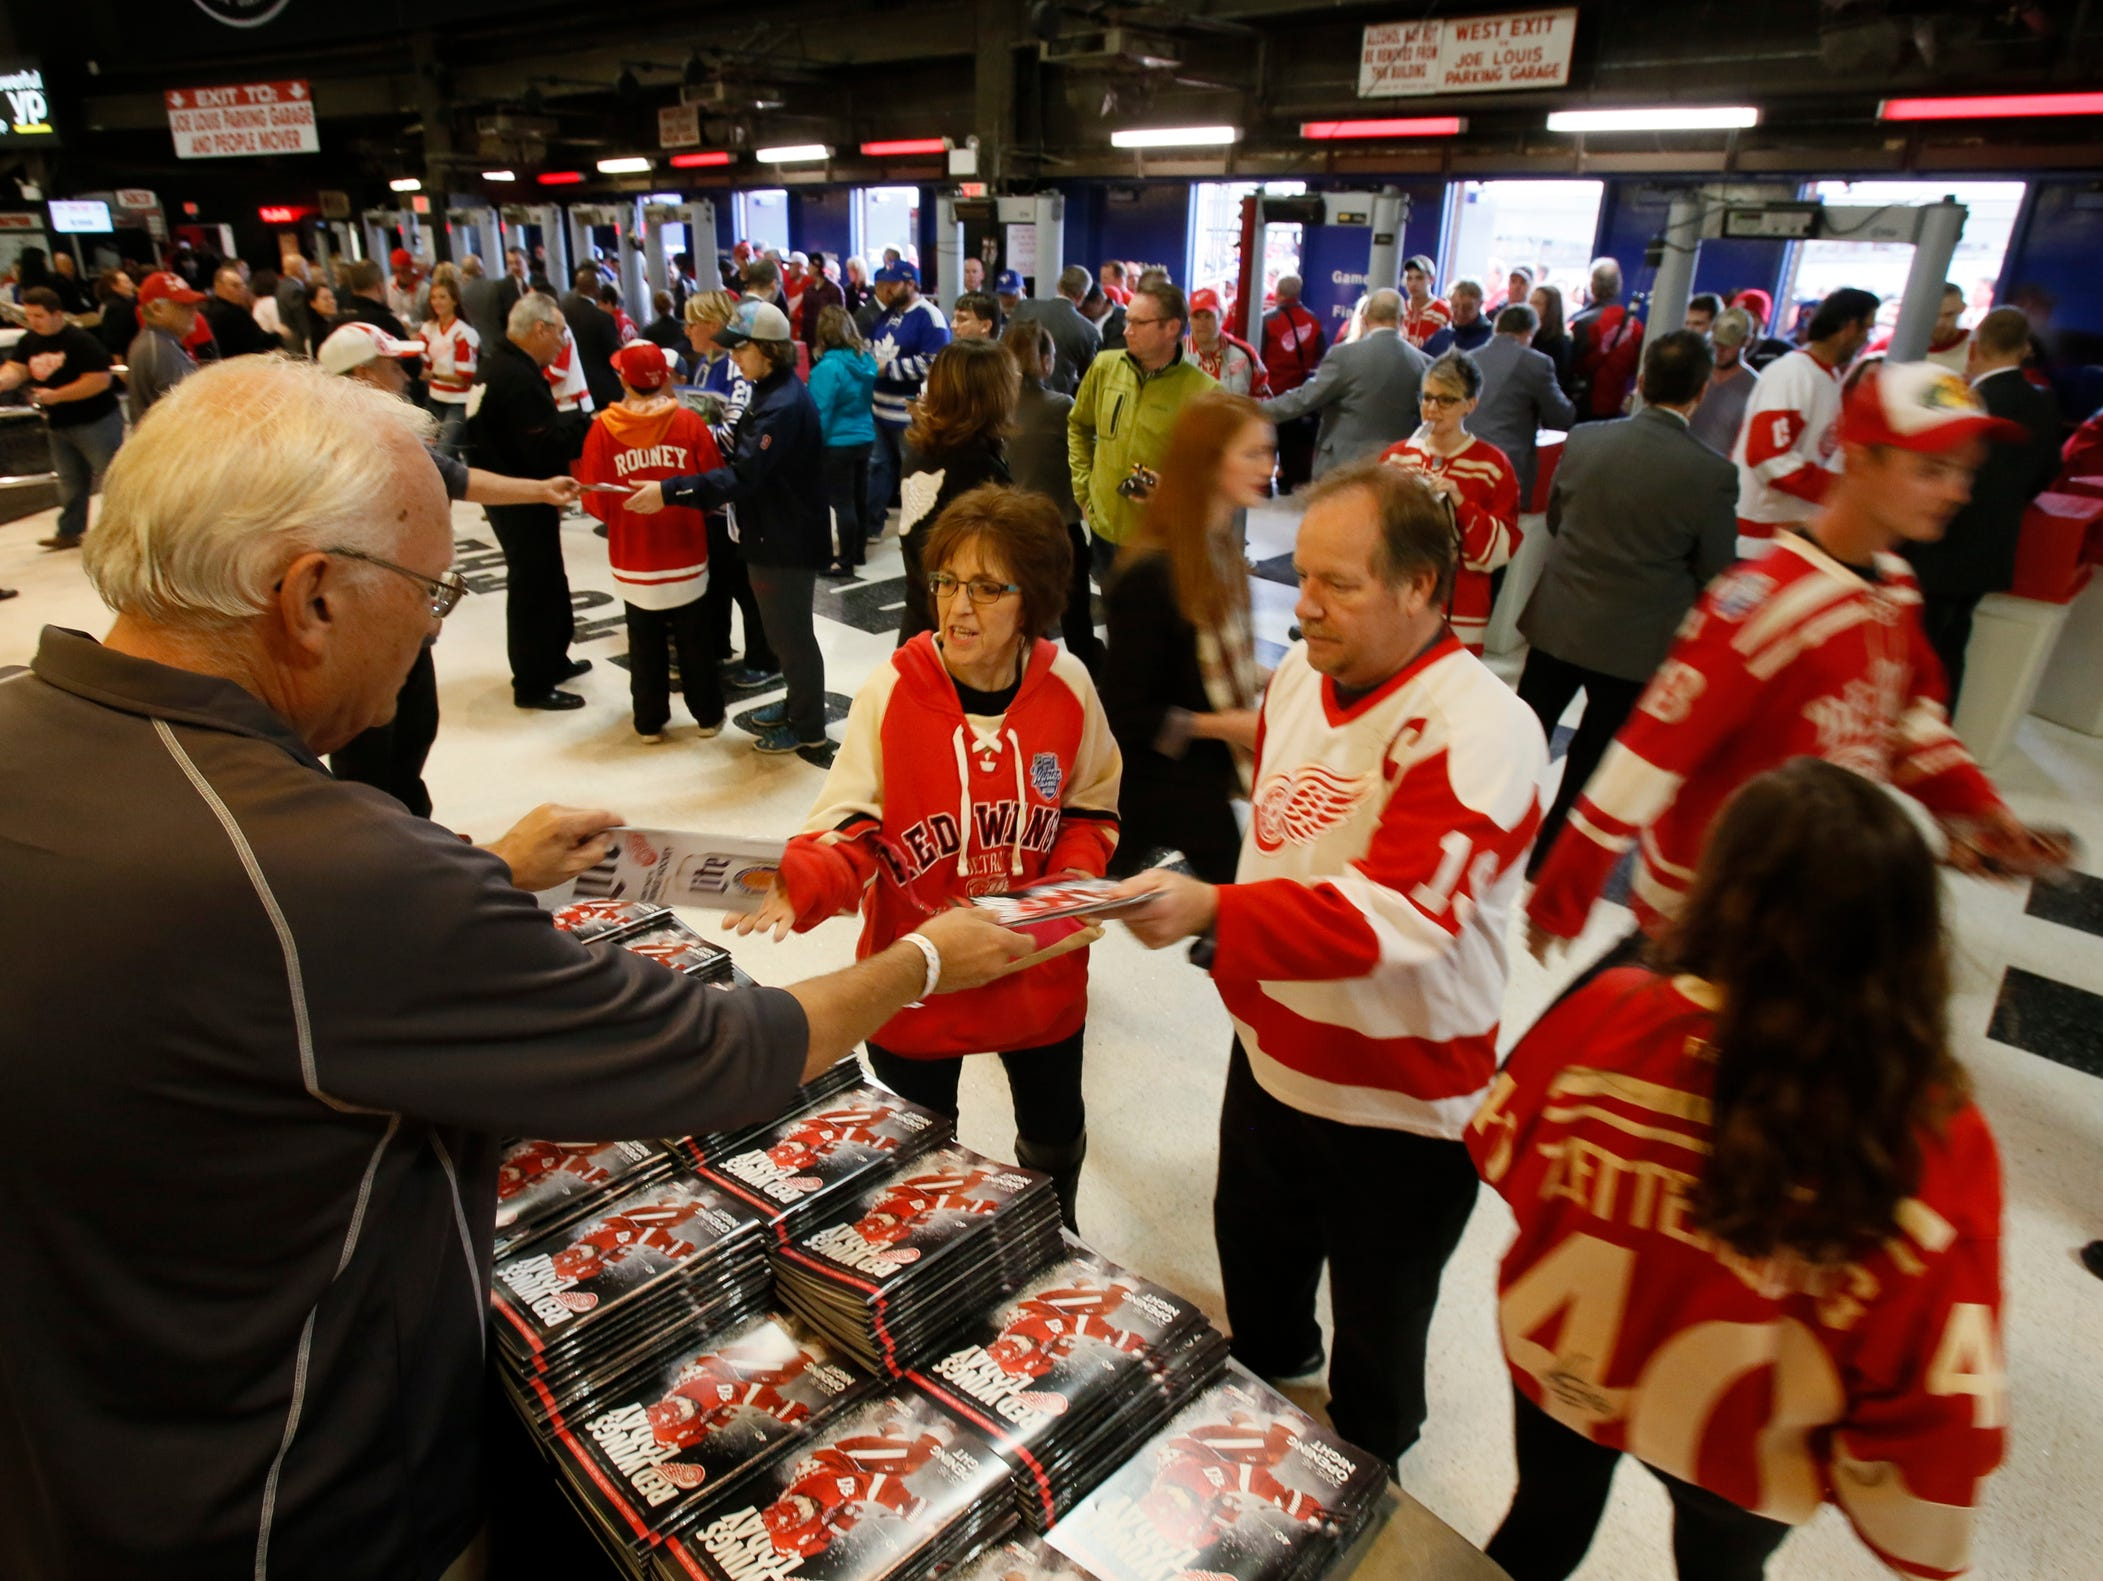 George Bresinsk, a volunteer for three years at Joe Louis Arena, hands out free programs to fans as they enter the Gordie Howe entrance for the Detroit Red Wings season opening game against the Toronto Maple Leafs on October 9, 2015, in Detroit.